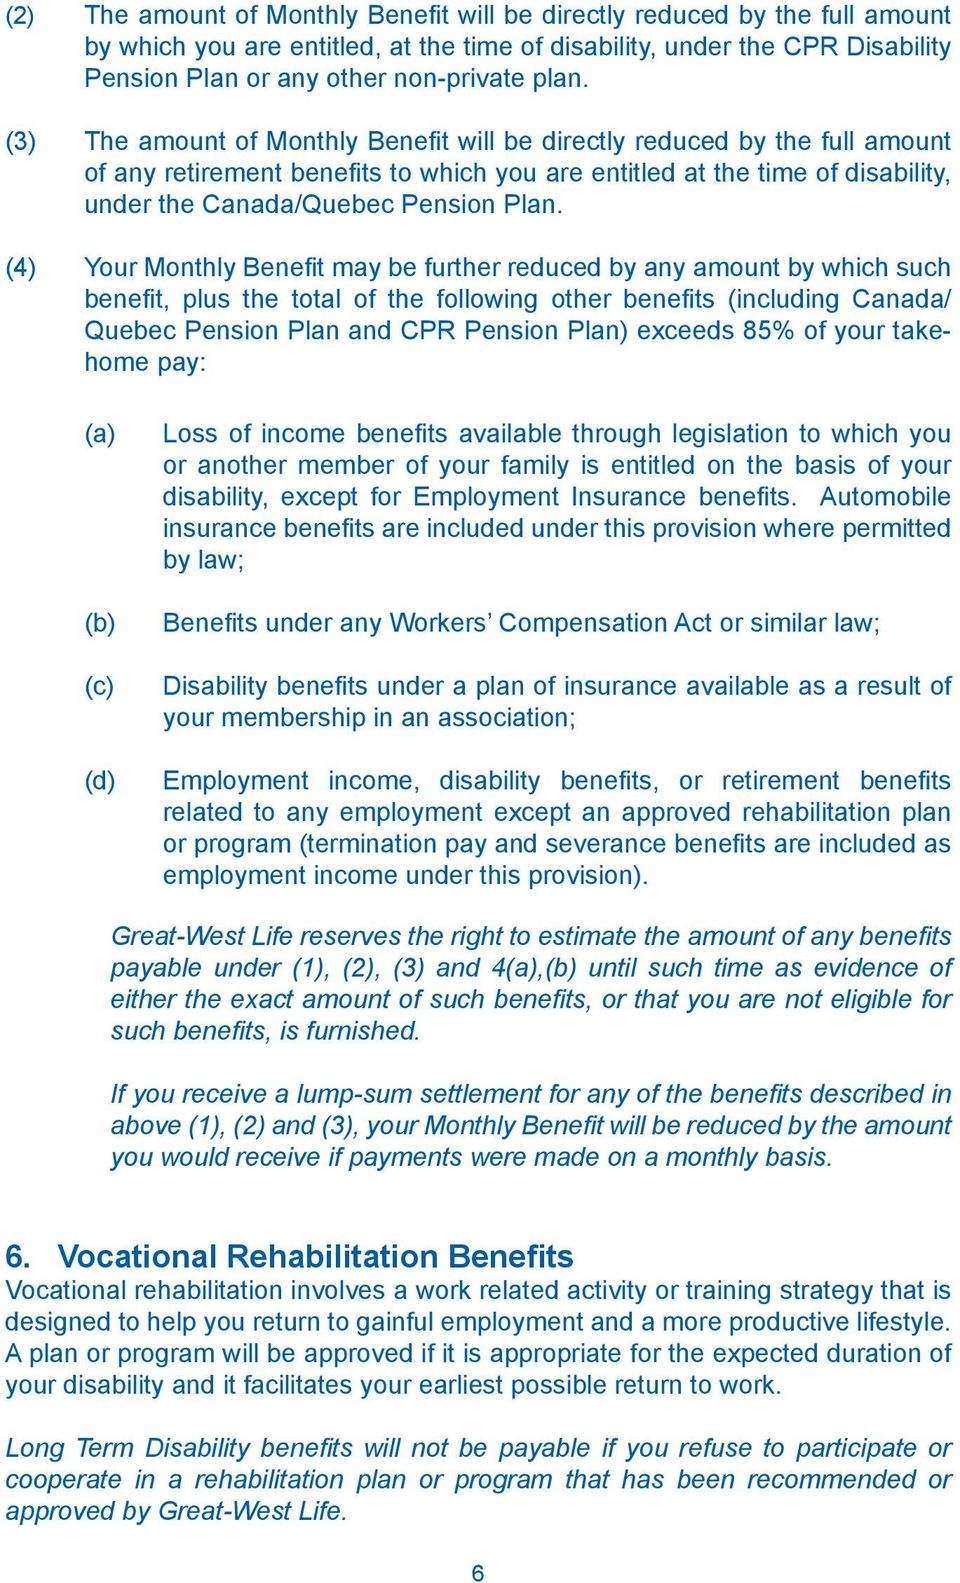 (4) Your Monthly Benefit may be further reduced by any amount by which such benefit, plus the total of the following other benefits (including Canada/ Quebec Pension Plan and CPR Pension Plan)